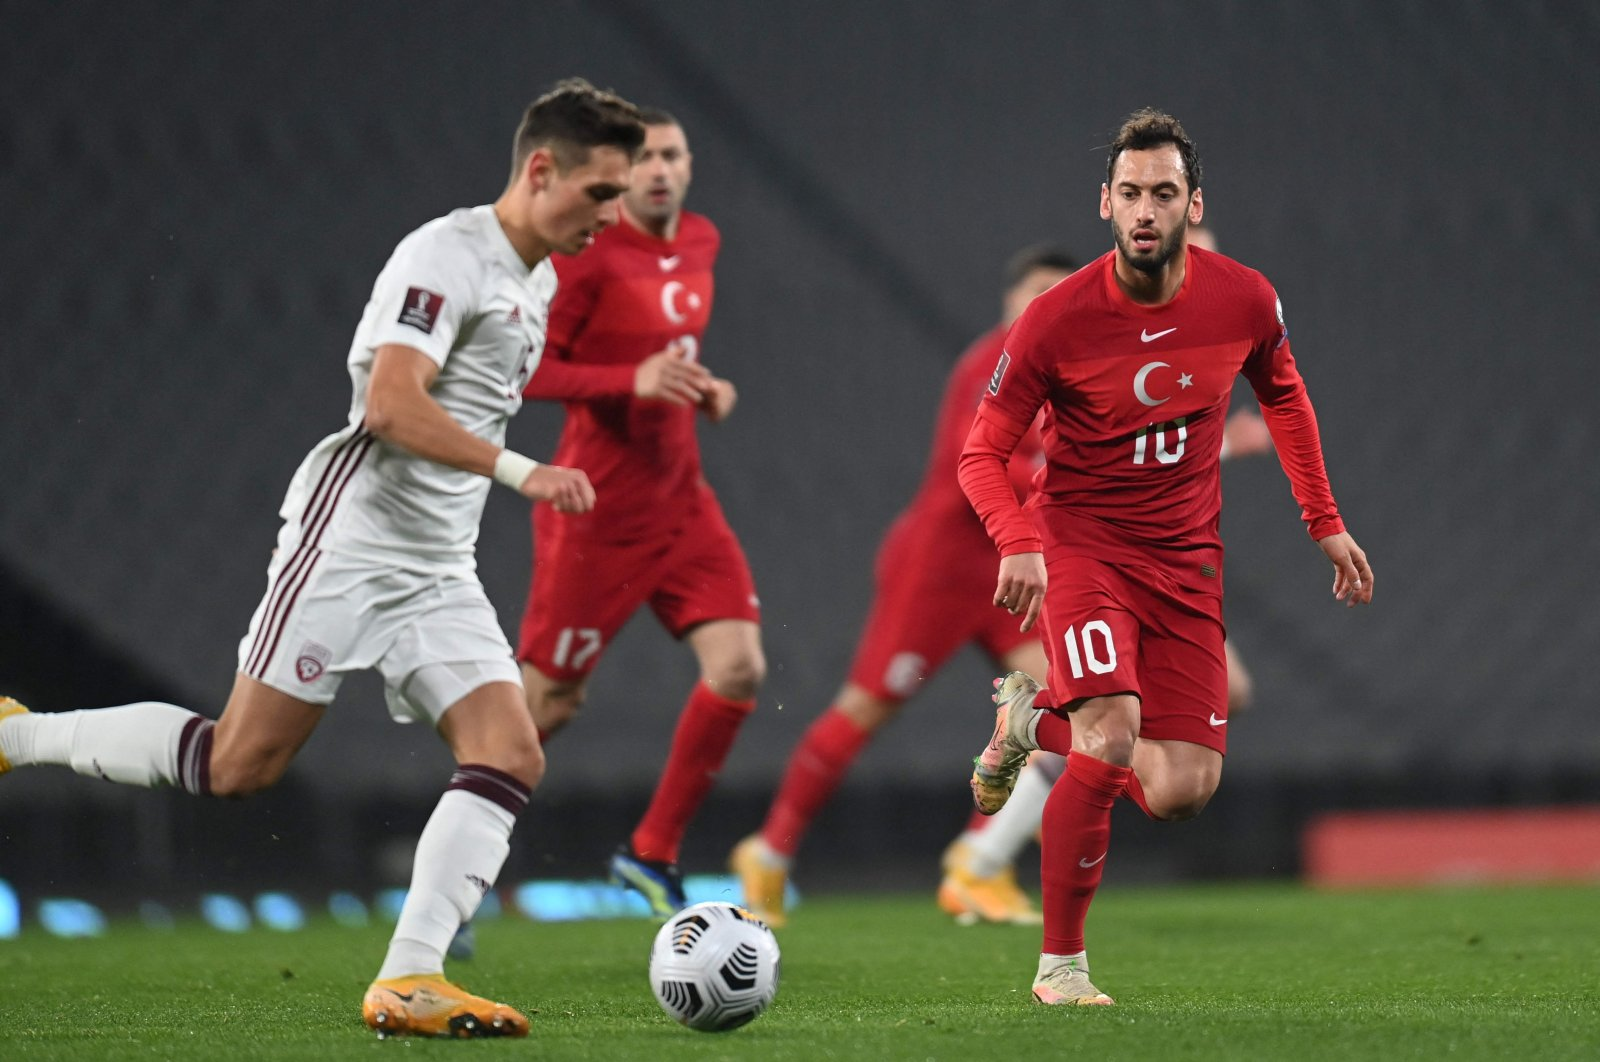 Turkey held to 3-3 draw against Latvia in World Cup qualifier